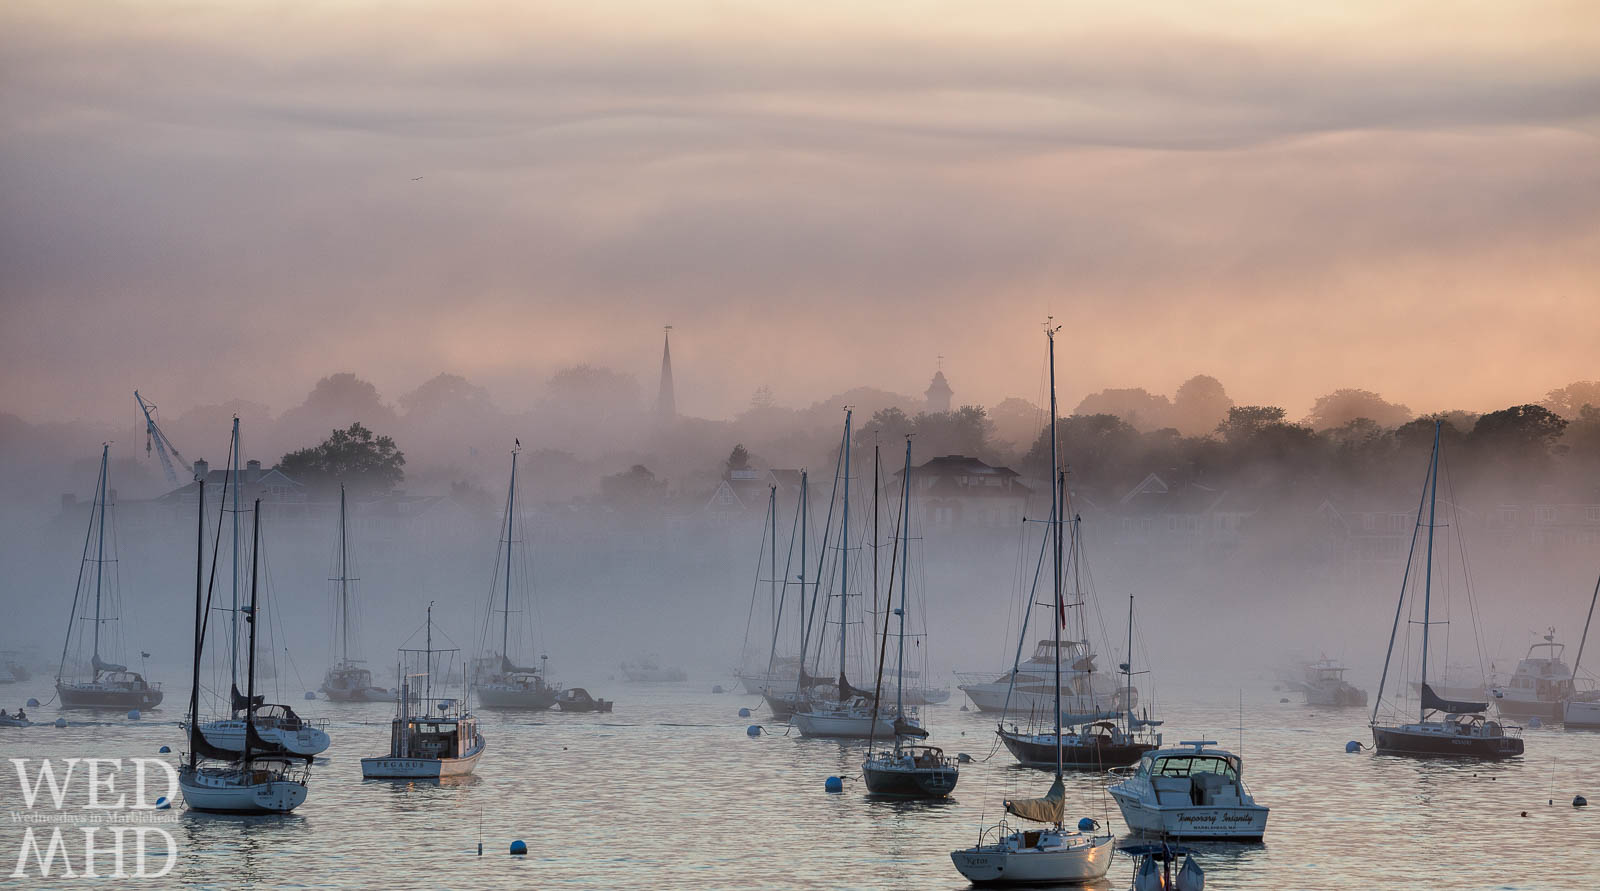 Marblehead's skyline is transformed by thick fog so that masts and steeples become the only familiar landmarks